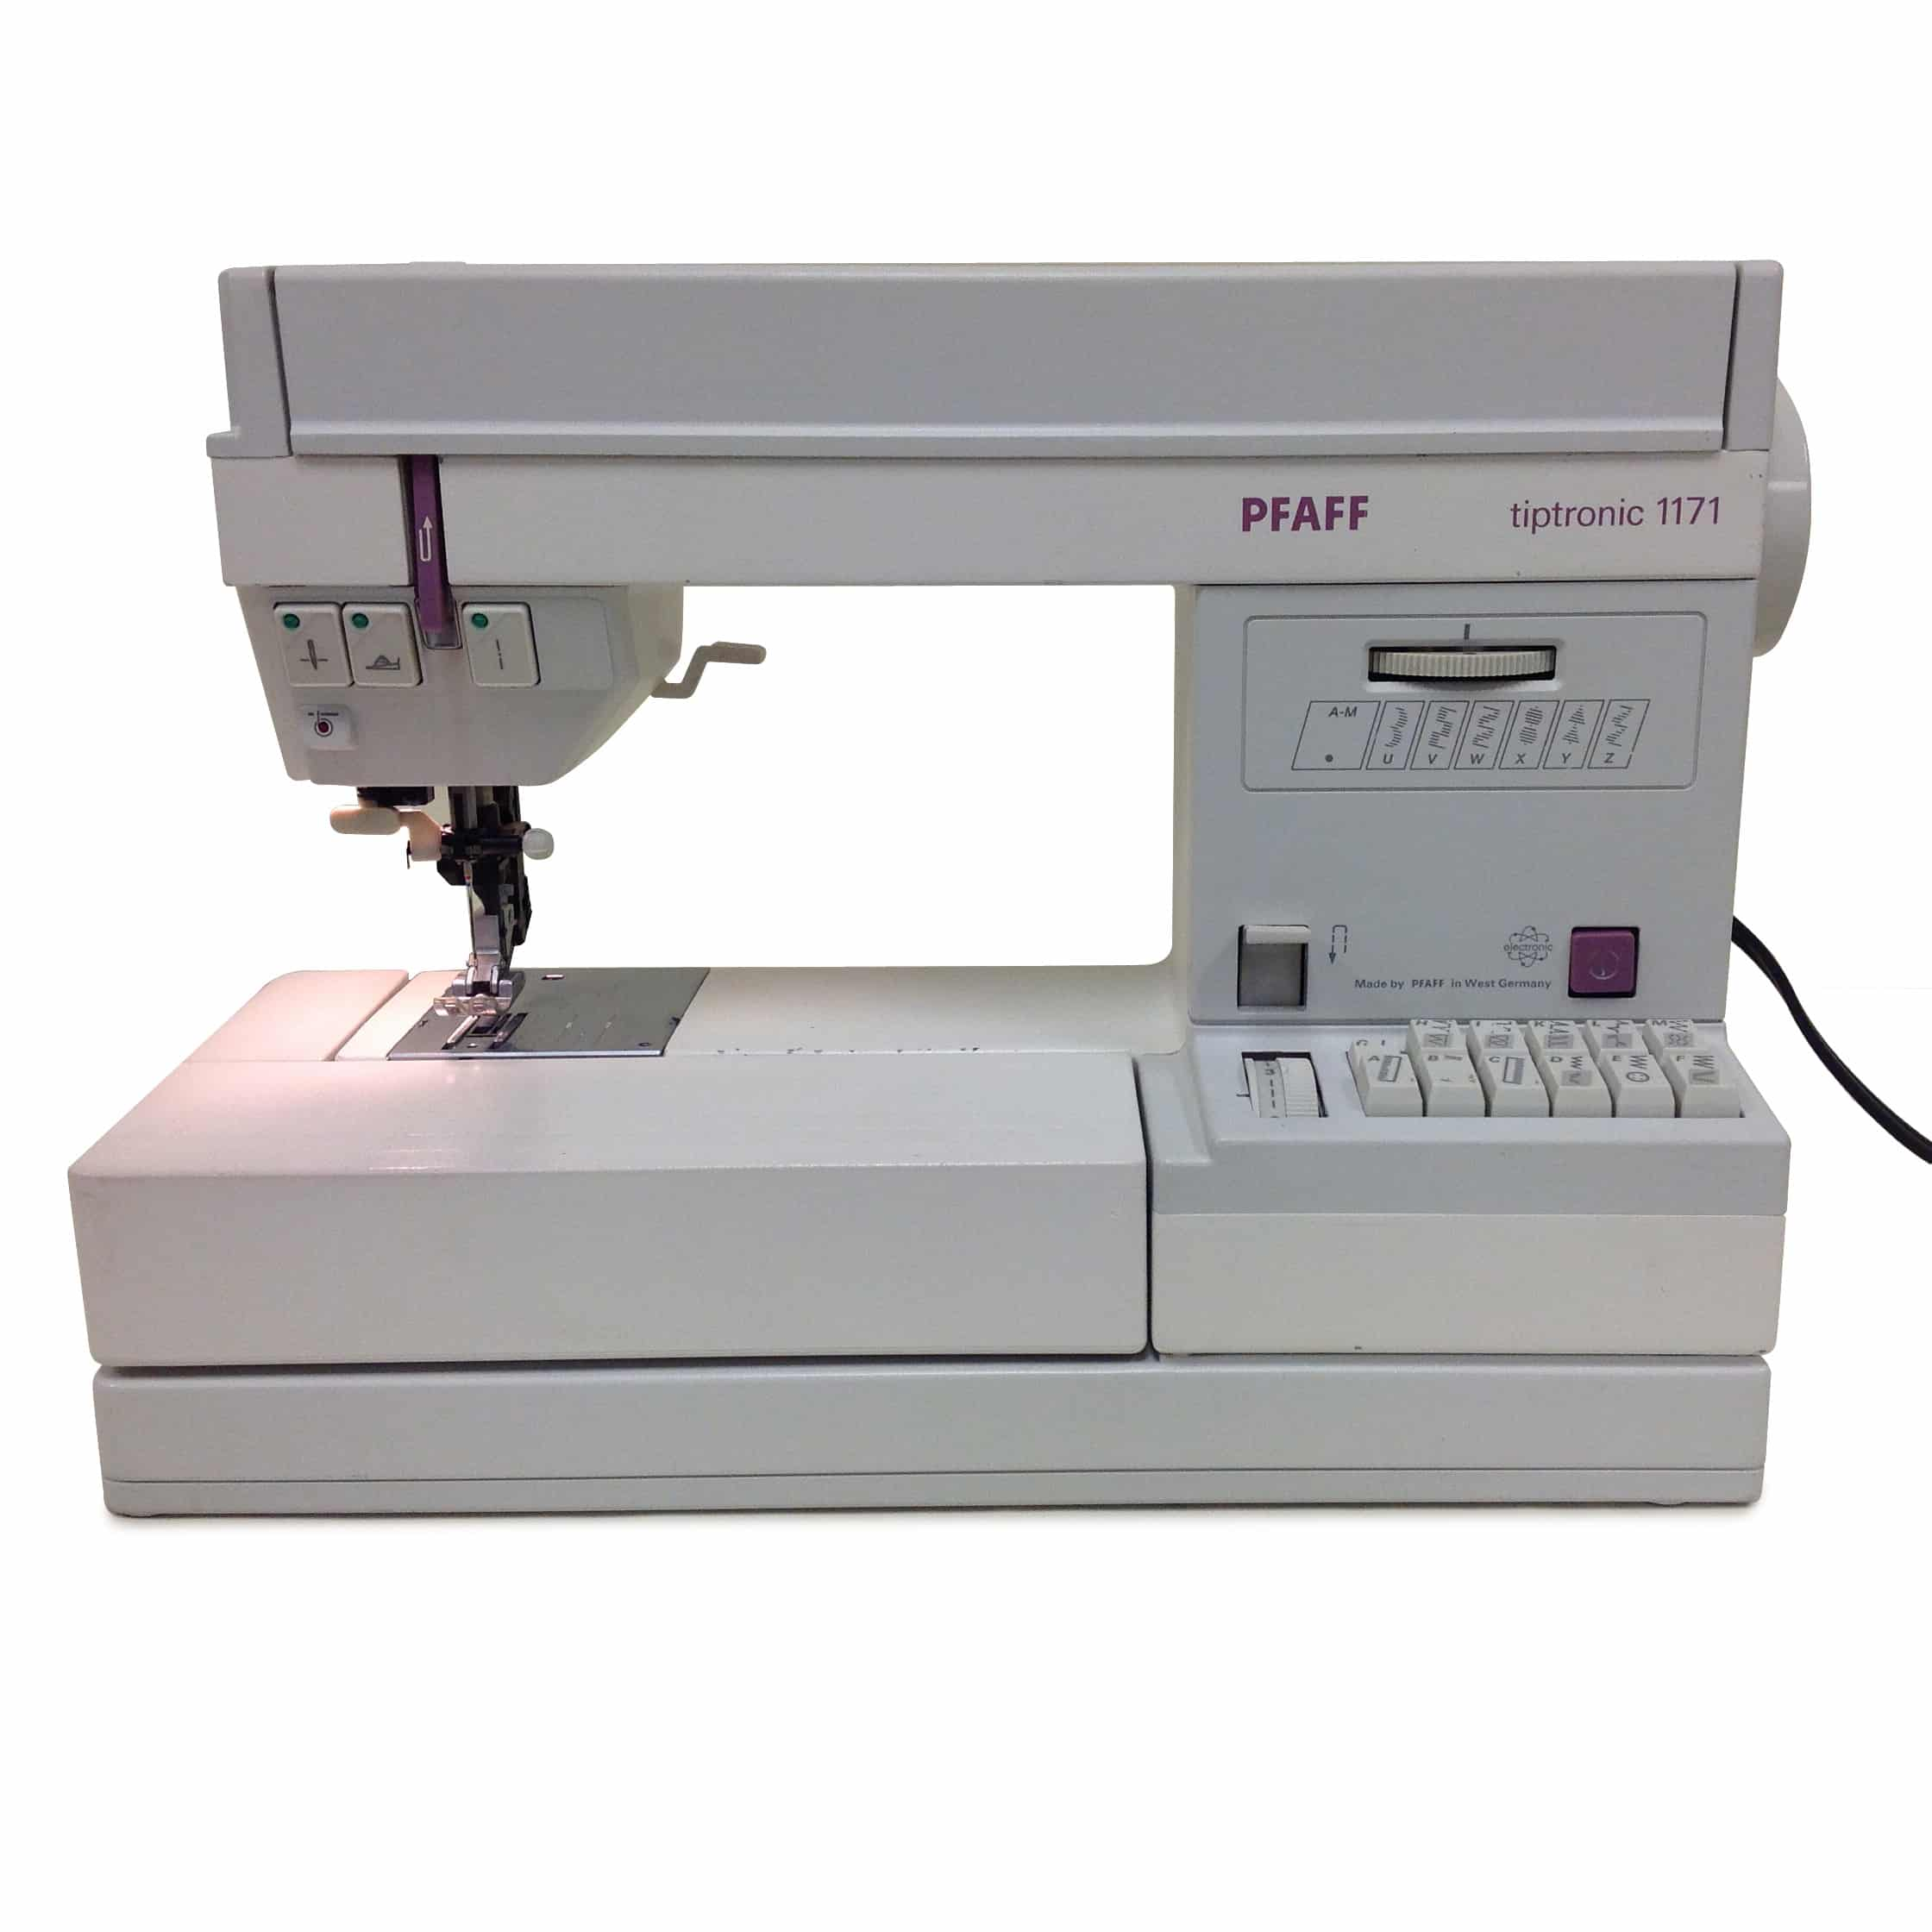 pfaff tiptronic 1171 preowned brubaker s sewing center rh brubakerssewing com pfaff creative 7550 service manual Pfaff 7550 Computer Went Blank